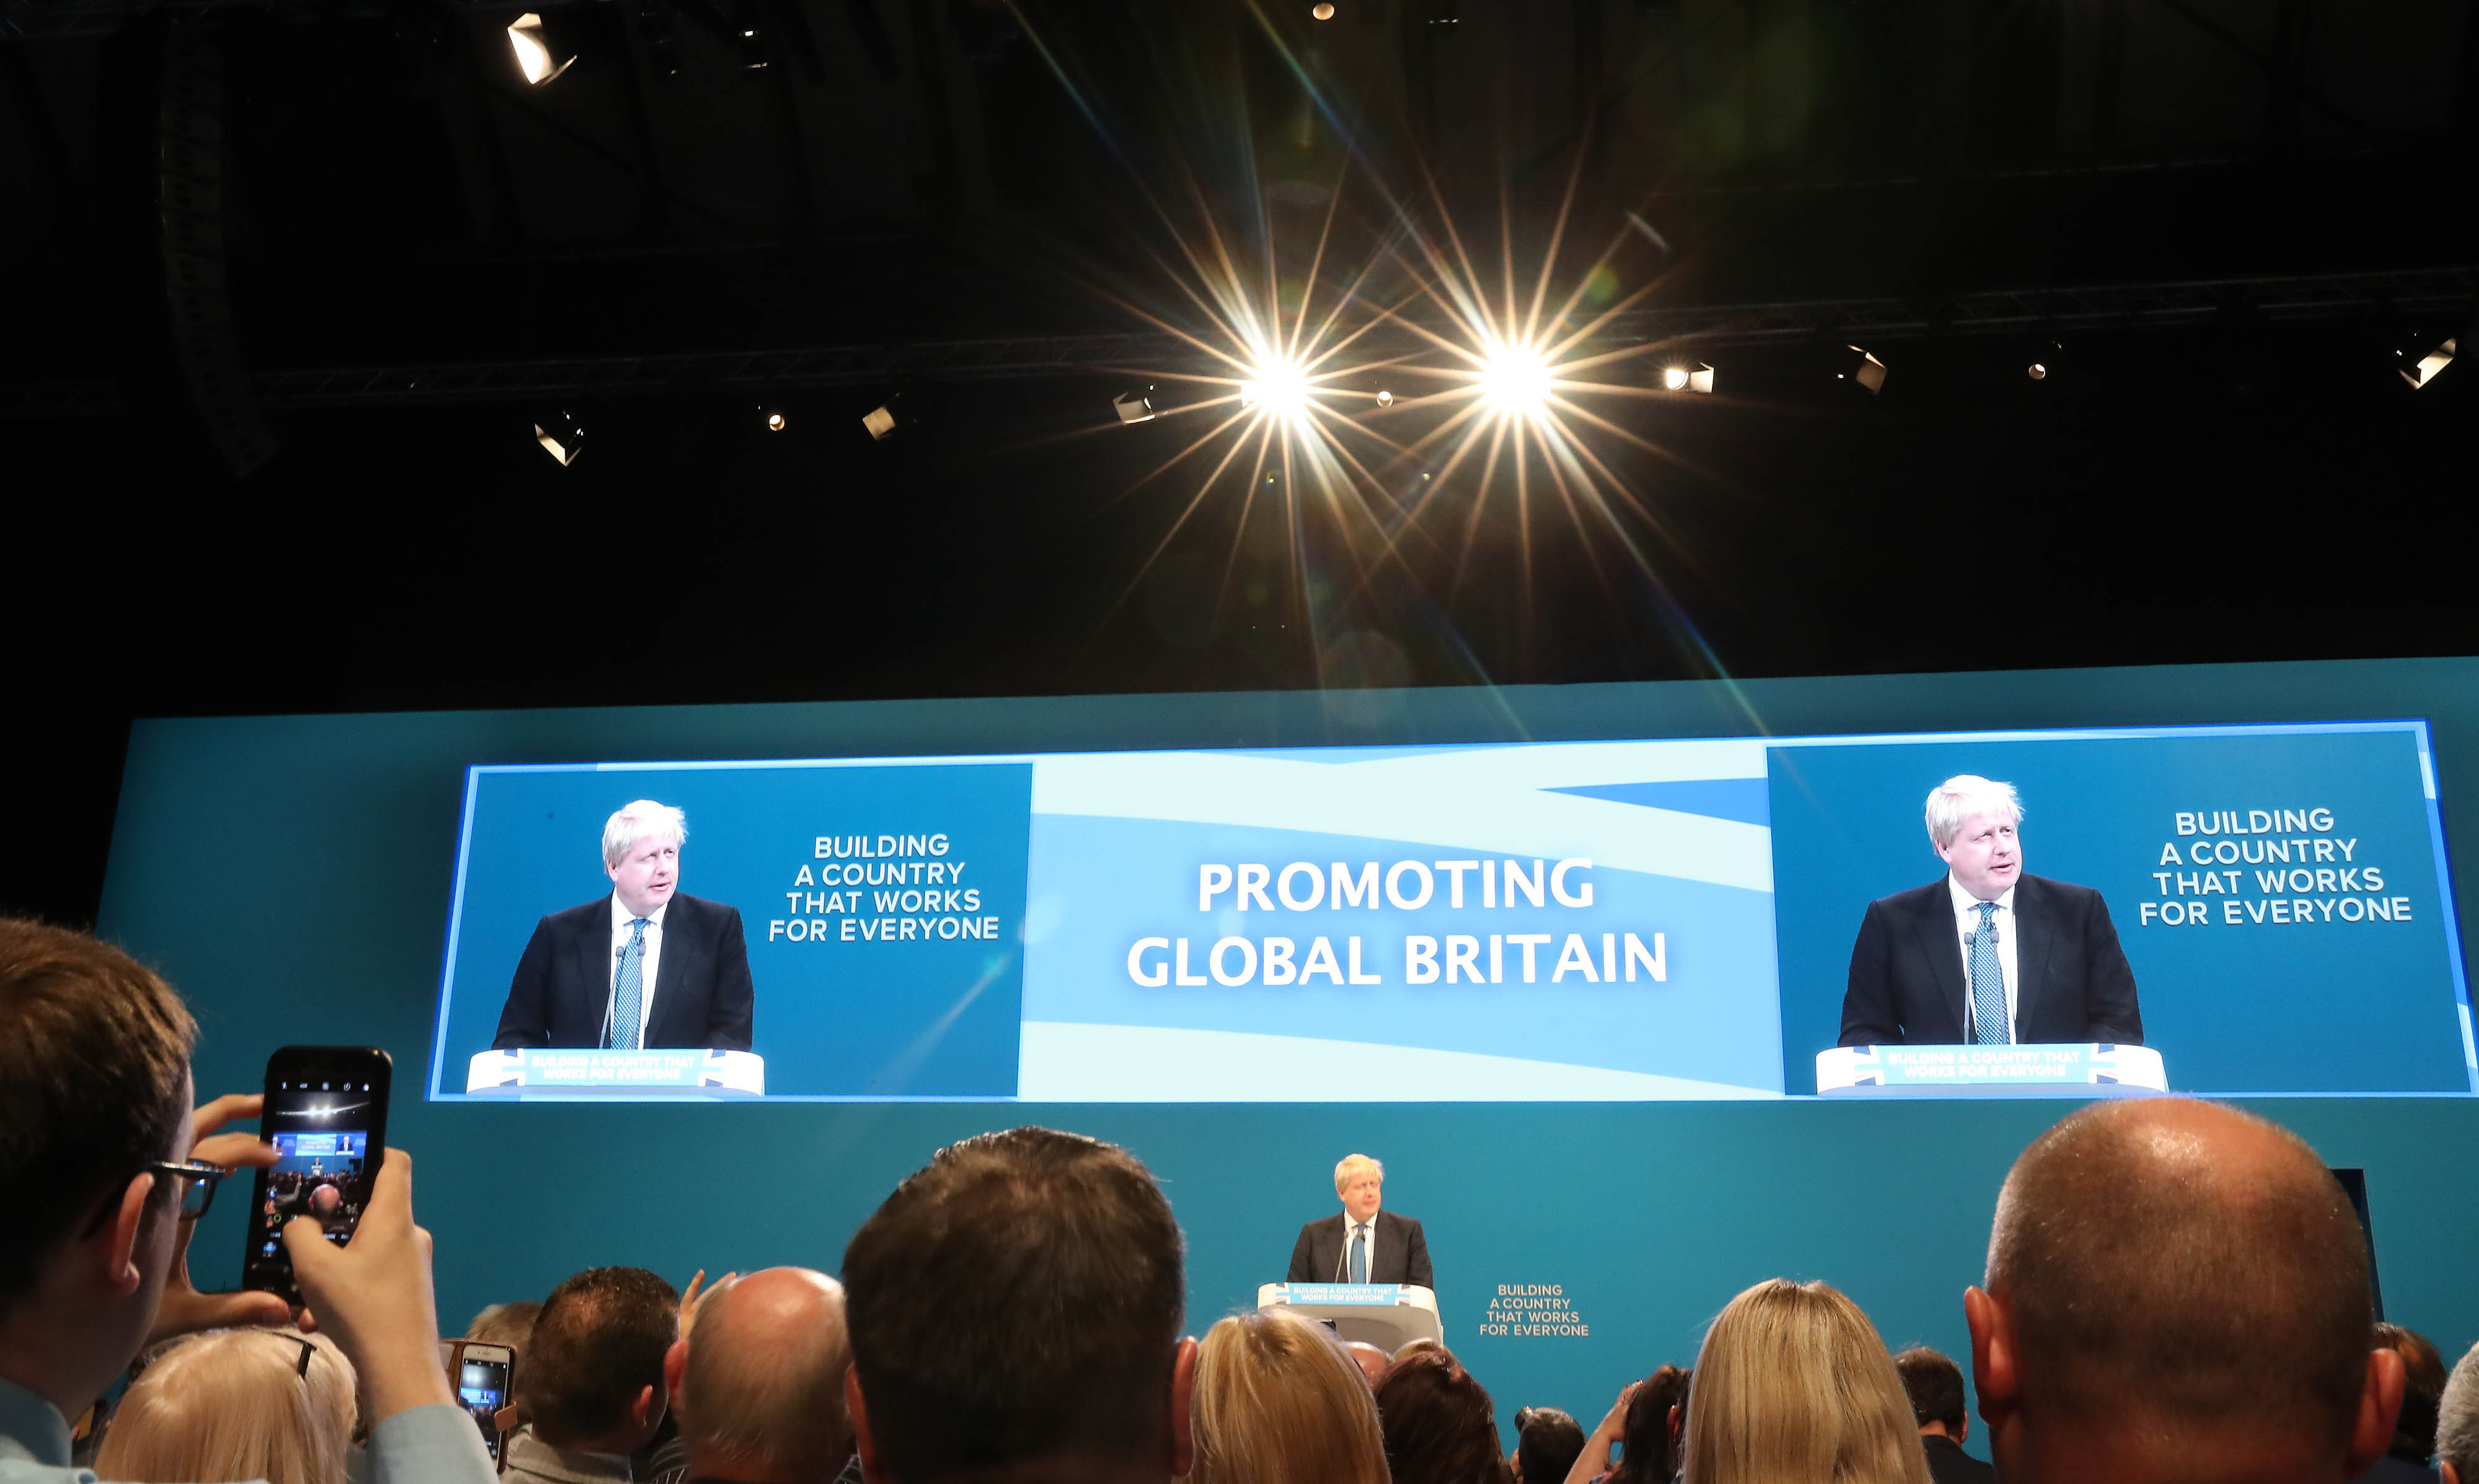 Foreign Secretary Boris Johnson delivering his speech at the Conservative party conference at the Manchester Central Convention Complex in Manchester.